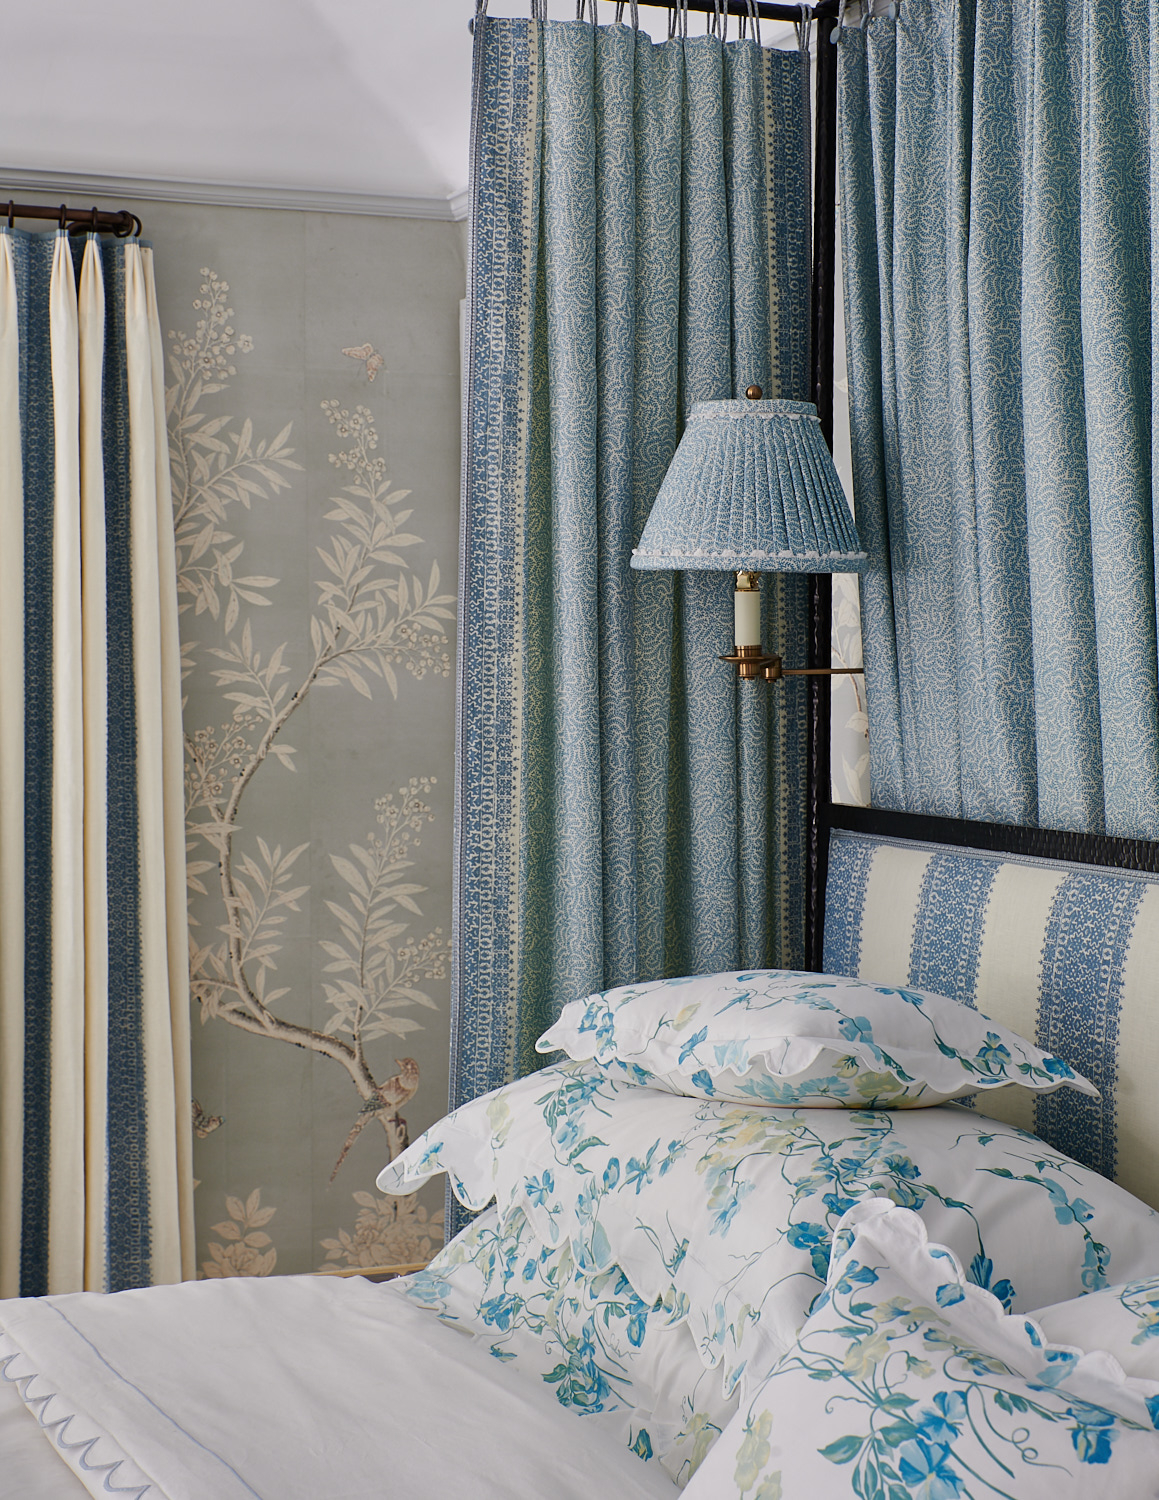 Bed Canopy and Pillows with Matching Lampshade